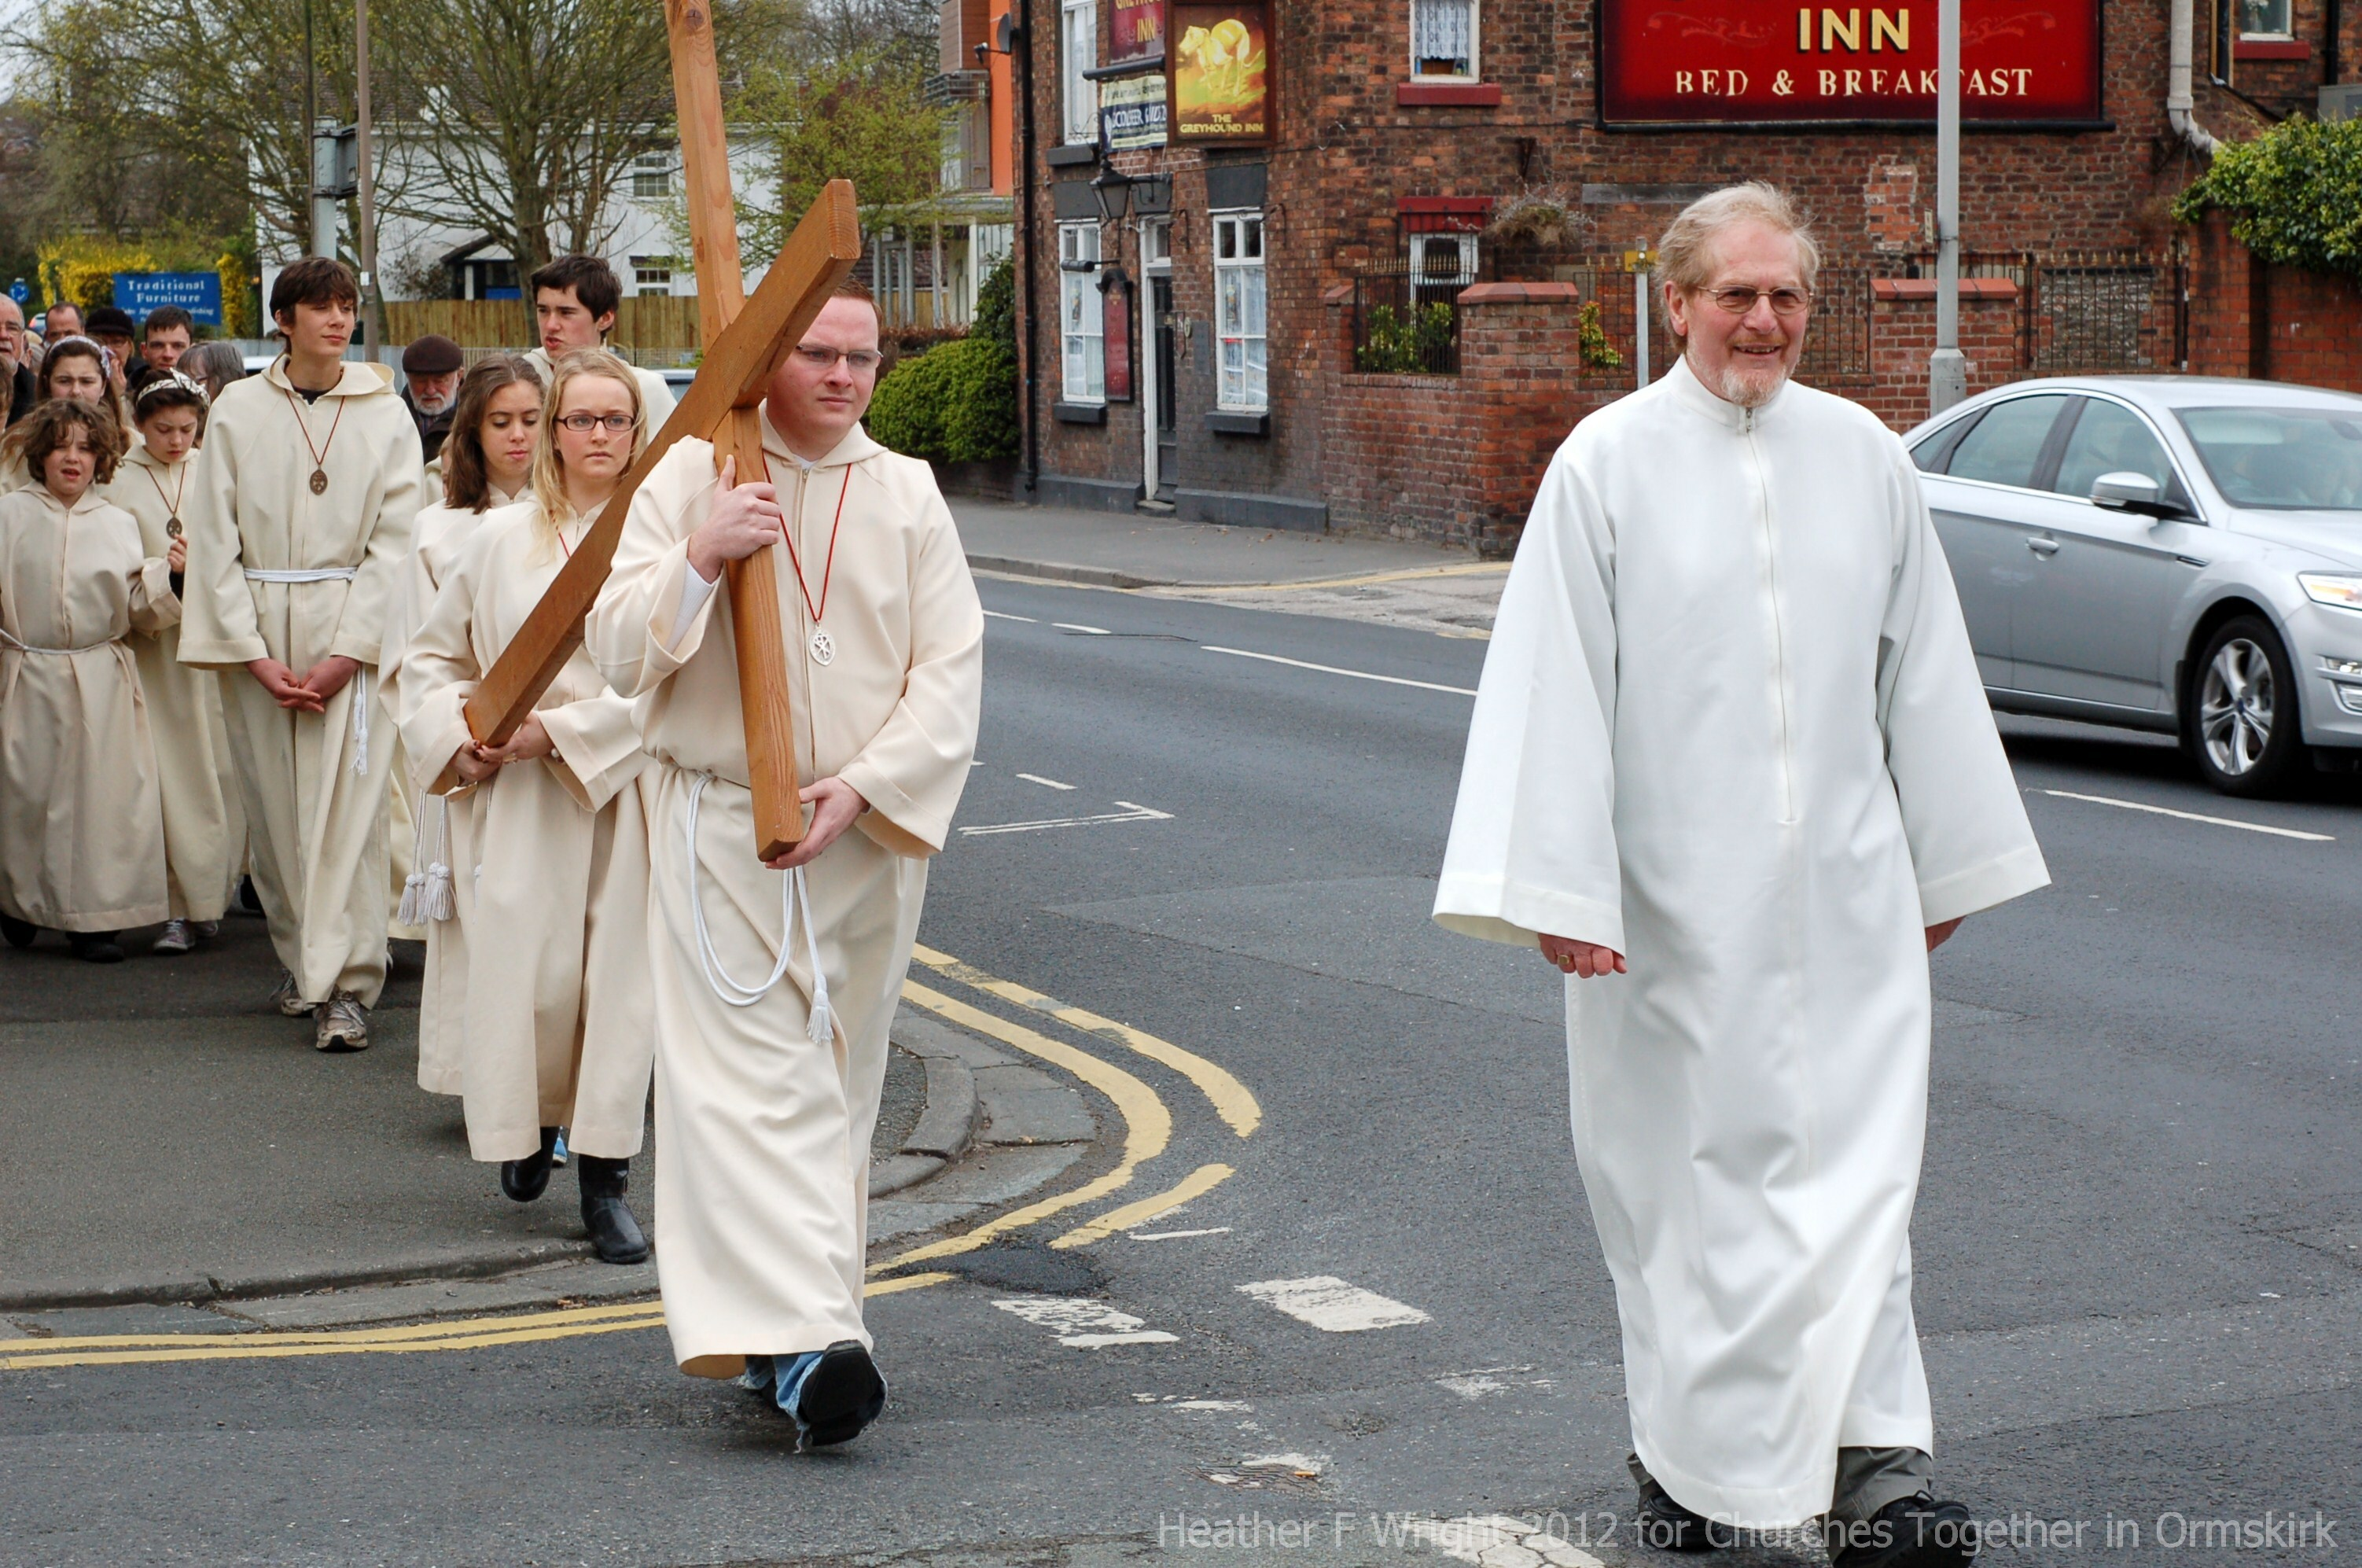 Ormskirk Walk of Witness 2012